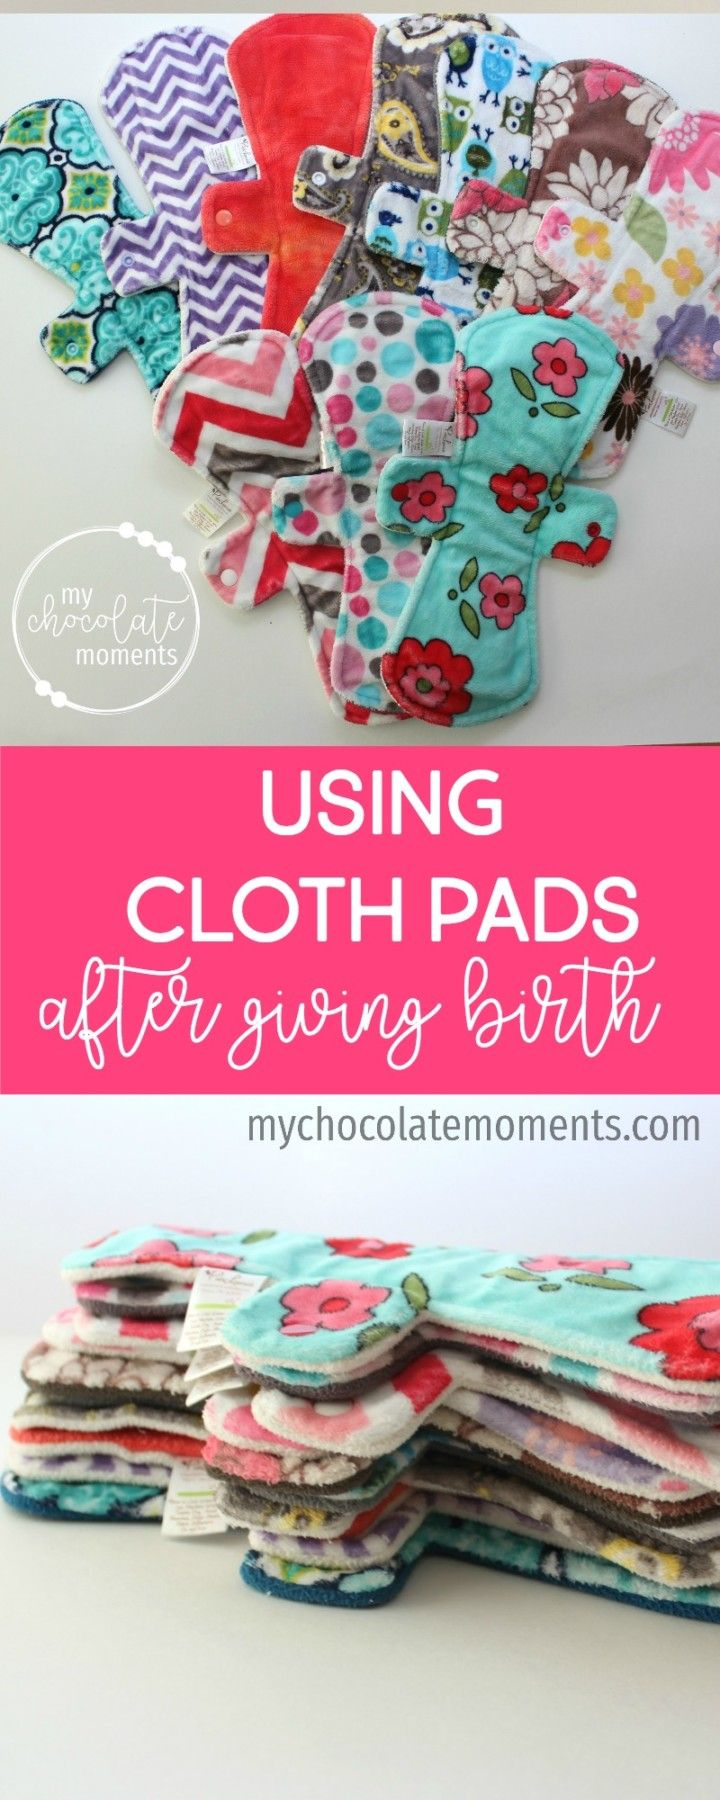 cloth pads for post partum recovery